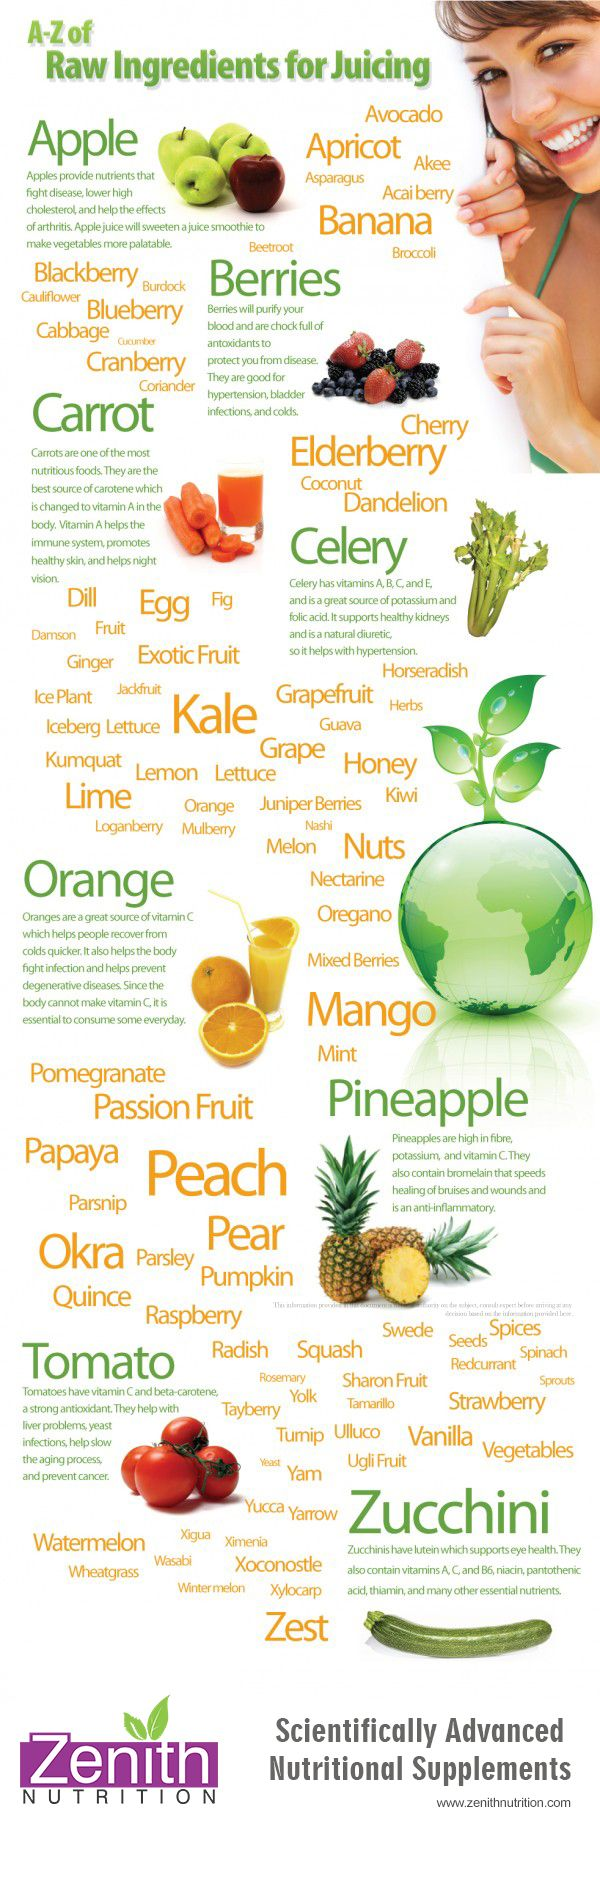 A-Z Of Raw Ingredients For Juicing. Best supplements from Zenith Nutrition. Health Supplements. Nutritional Supplements. Health Infographics